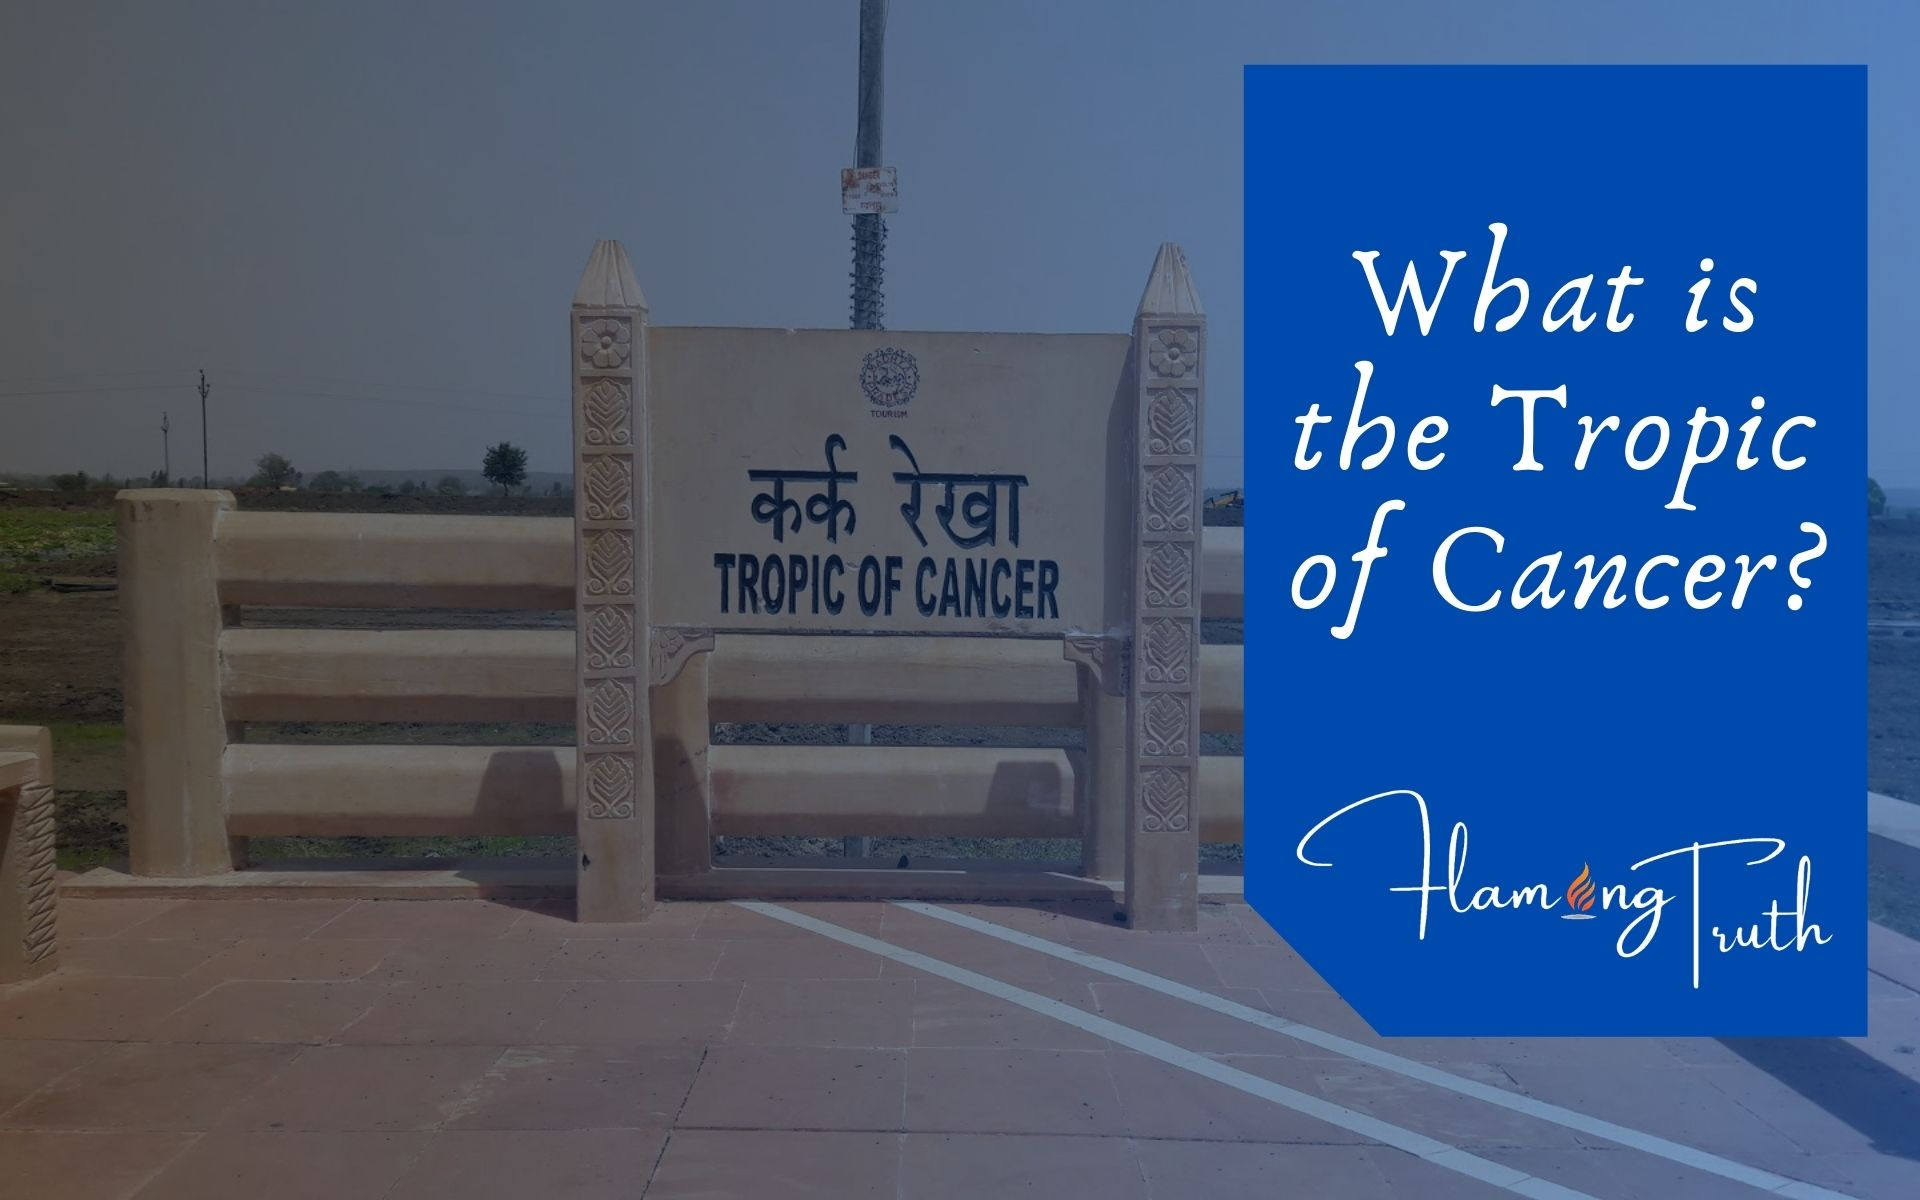 What-is-the-tropic-of-cancer